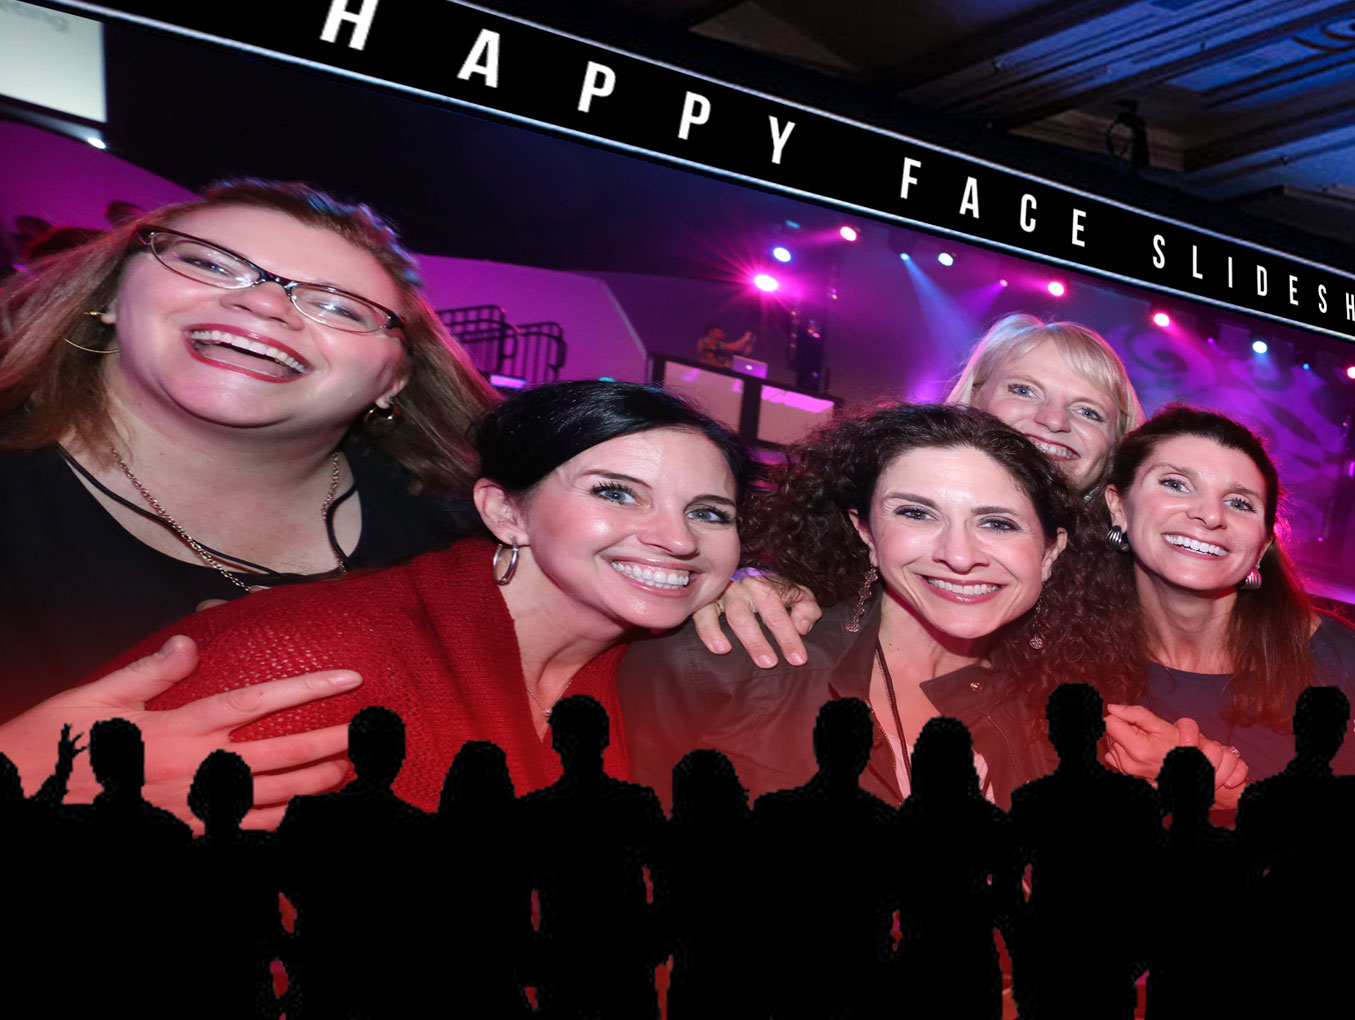 Happy Face Slideshow For Your Next Event